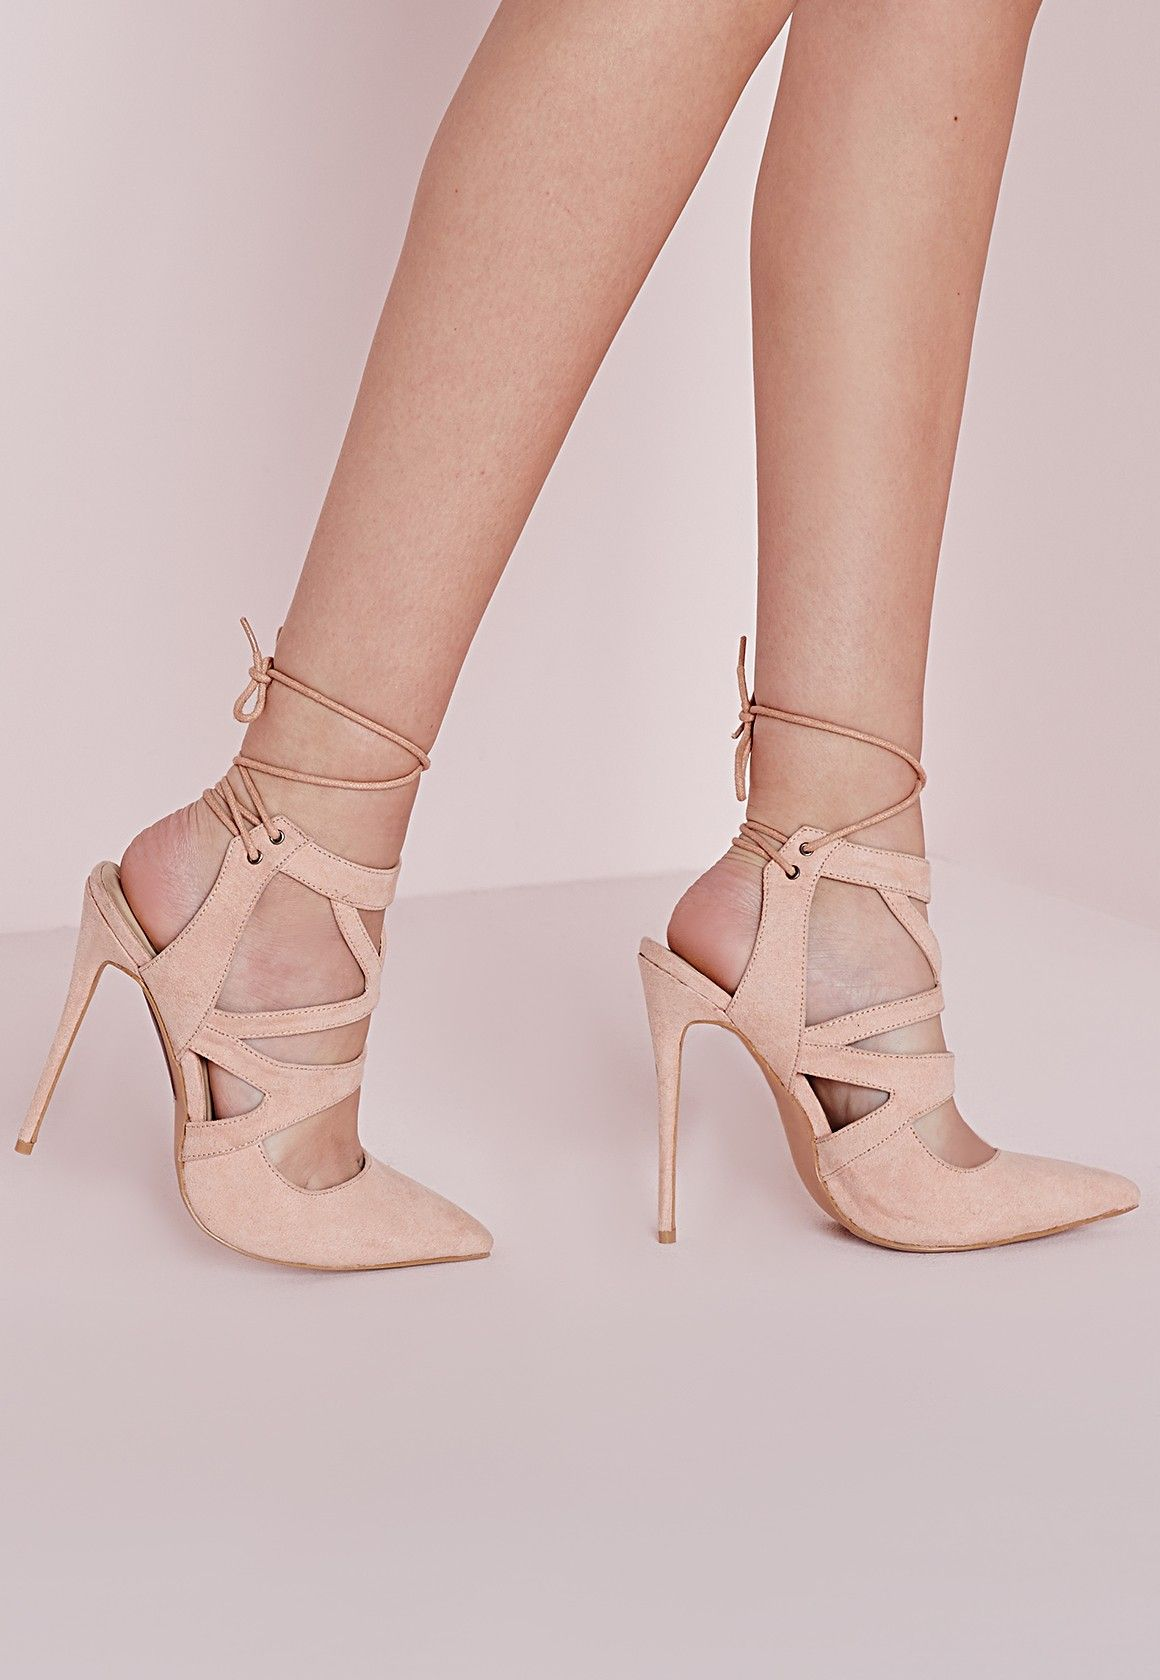 Nude shoes for women with tie